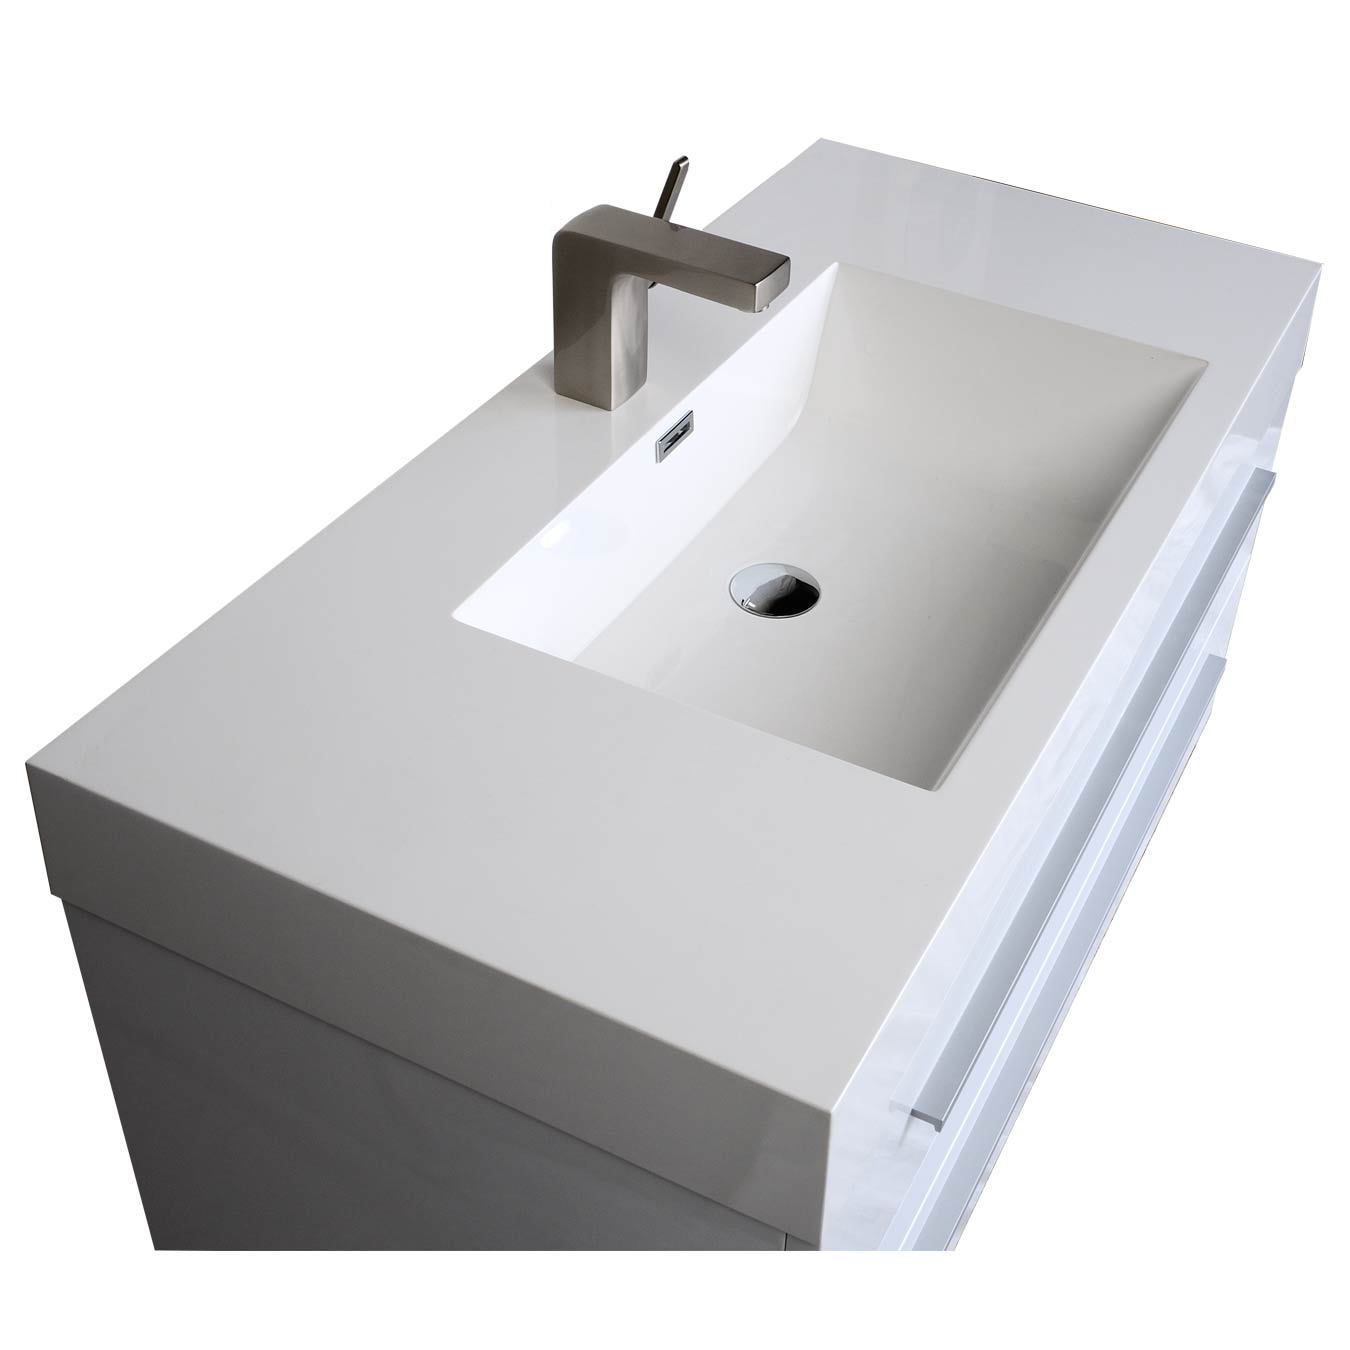 wall cabinet viewfindersclub sink single mount org bathroom set vanity modern